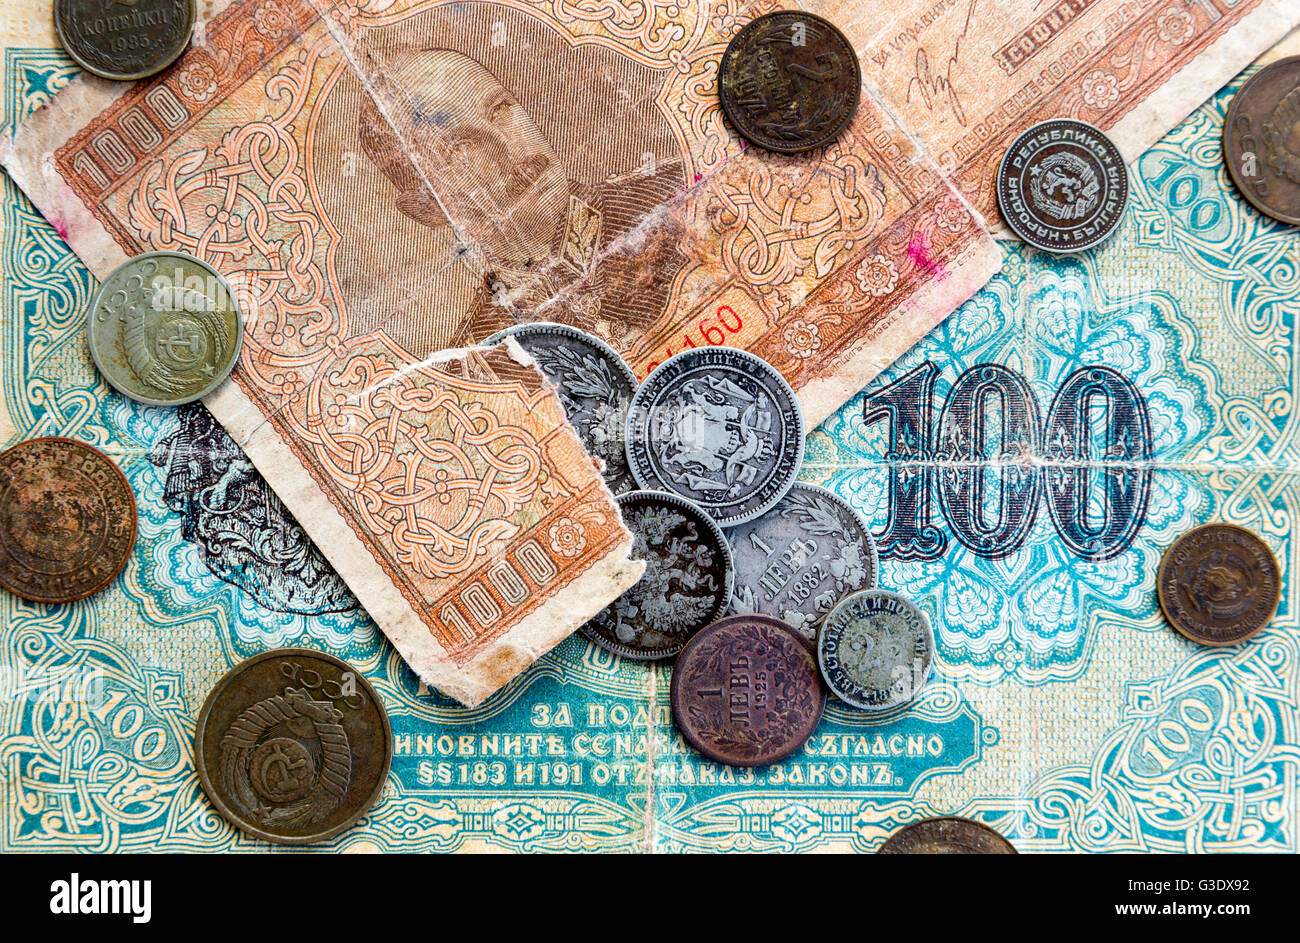 Silver coins, USSR coins and banknotes. Expired Bulgarian banknotes. Old expired money. Bulgarian leva and Soviet Stock Photo